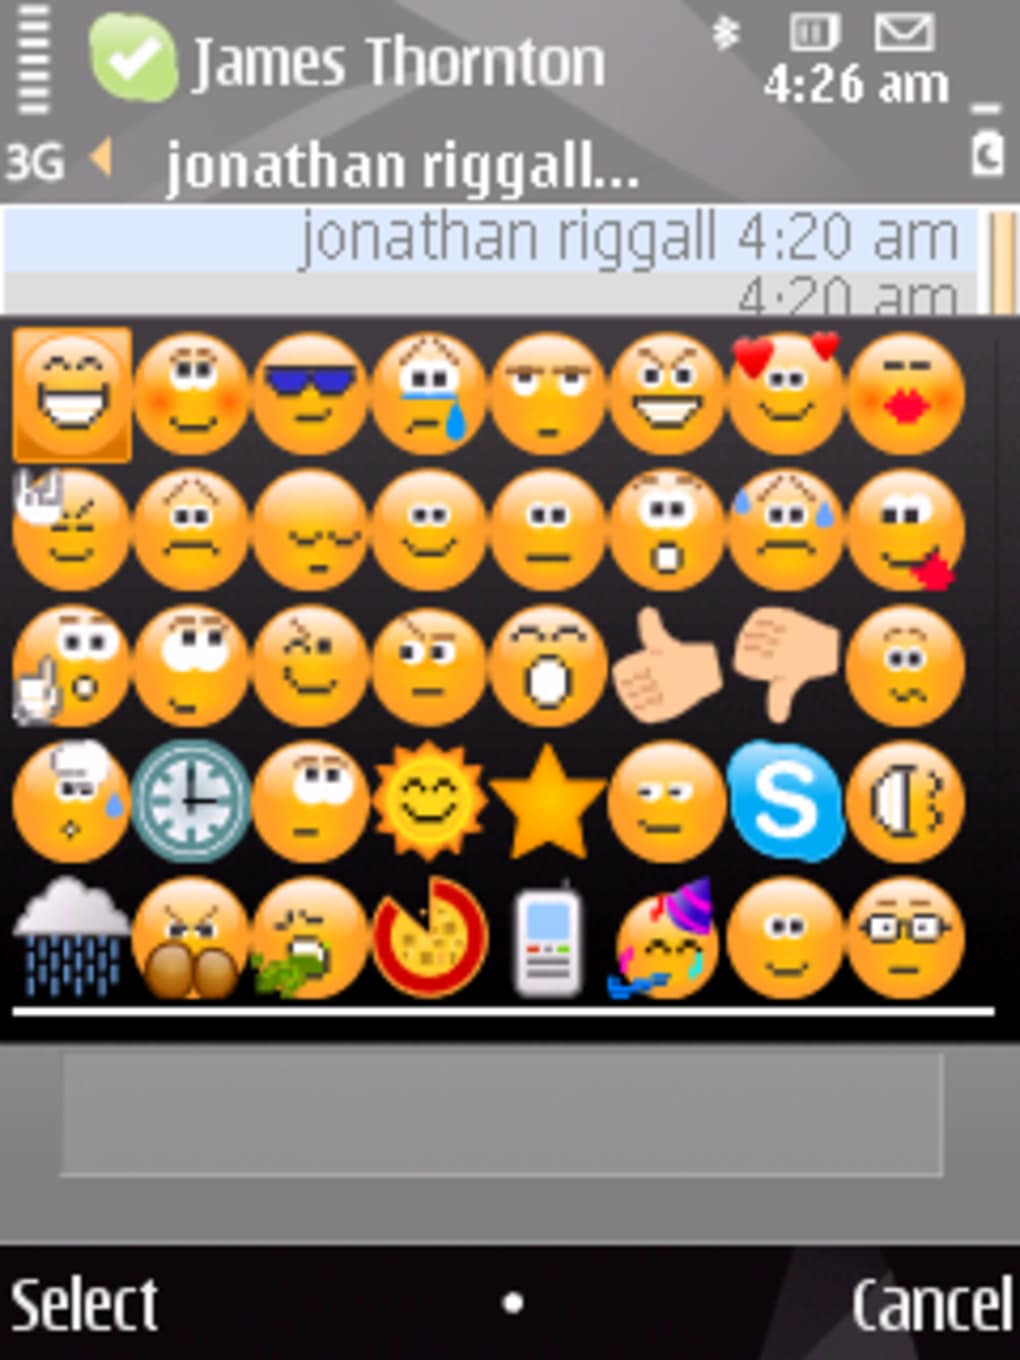 Skype for symbian arrives in nokia ovi store | know your mobile.